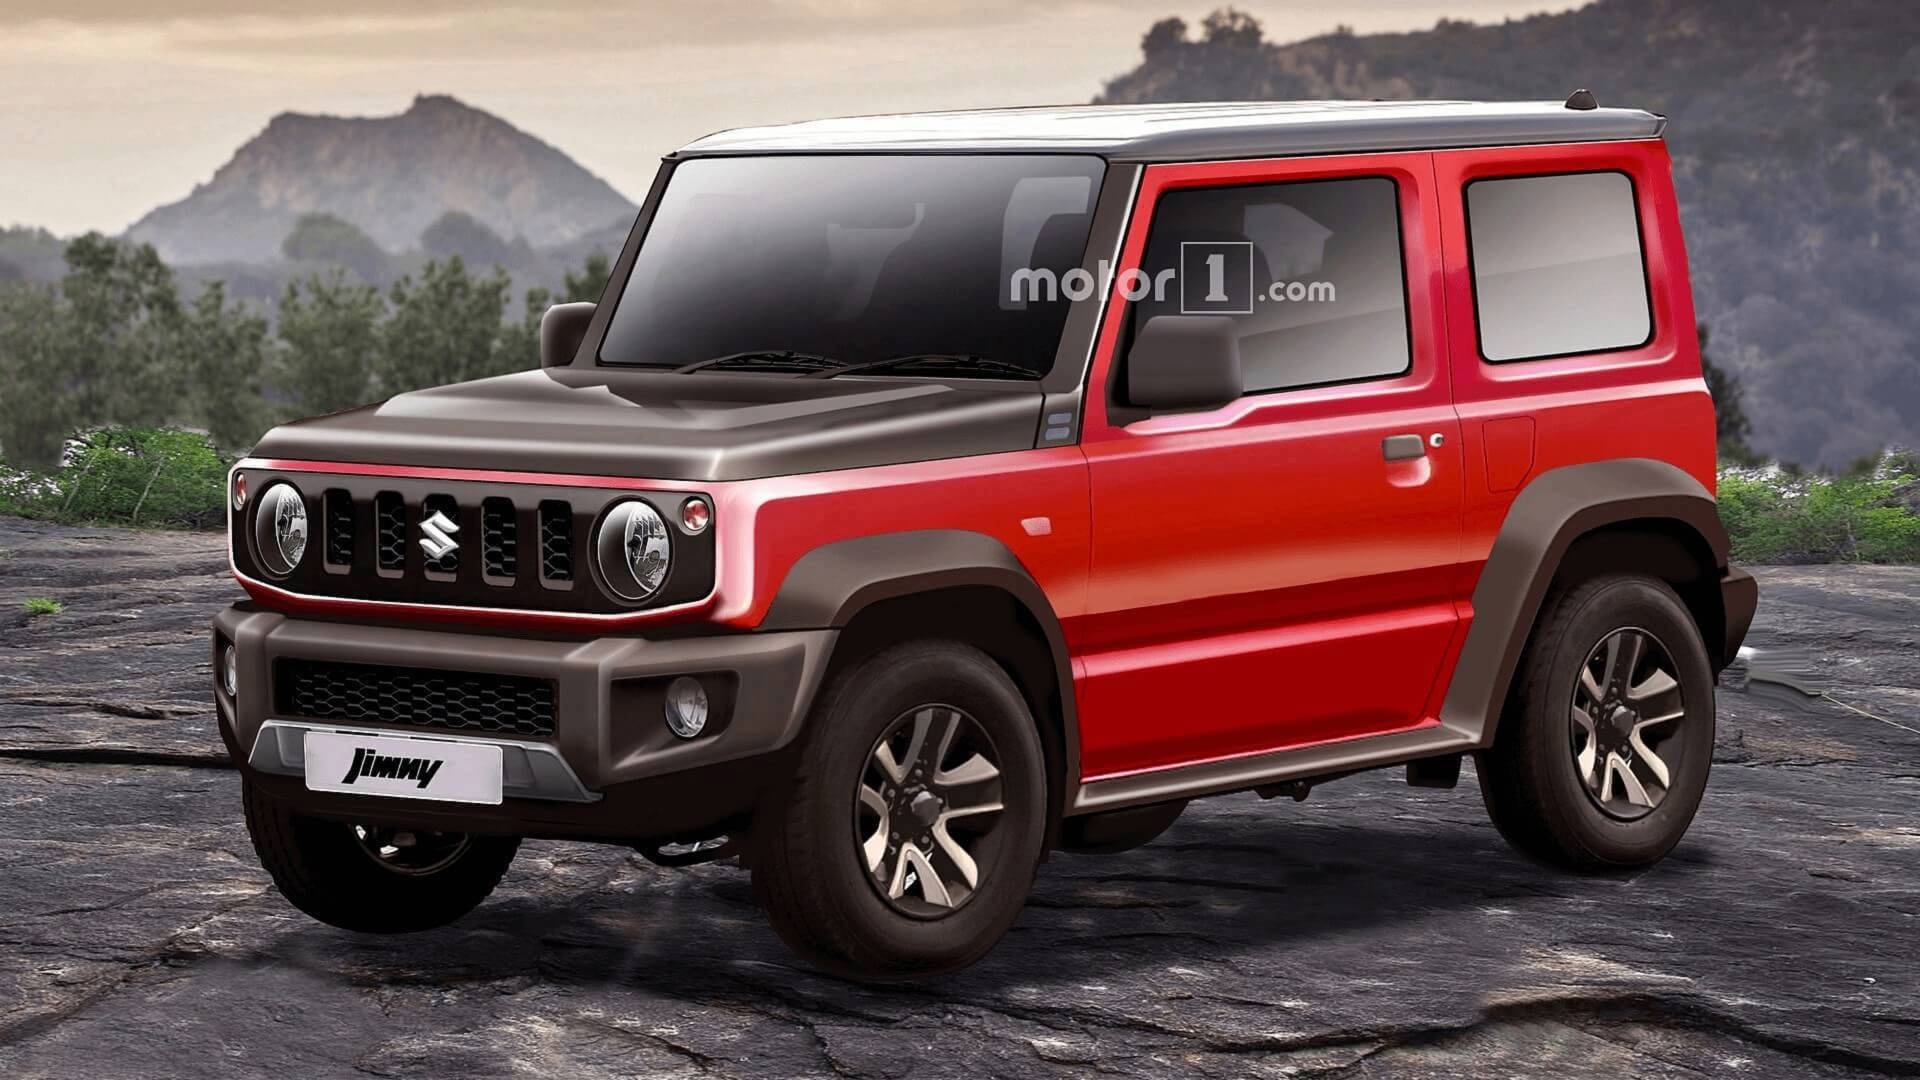 2019 Suzuki Jimny: News, Design, Release >> 2019 Suzuki Jimny Rendering Predicts The Obvious